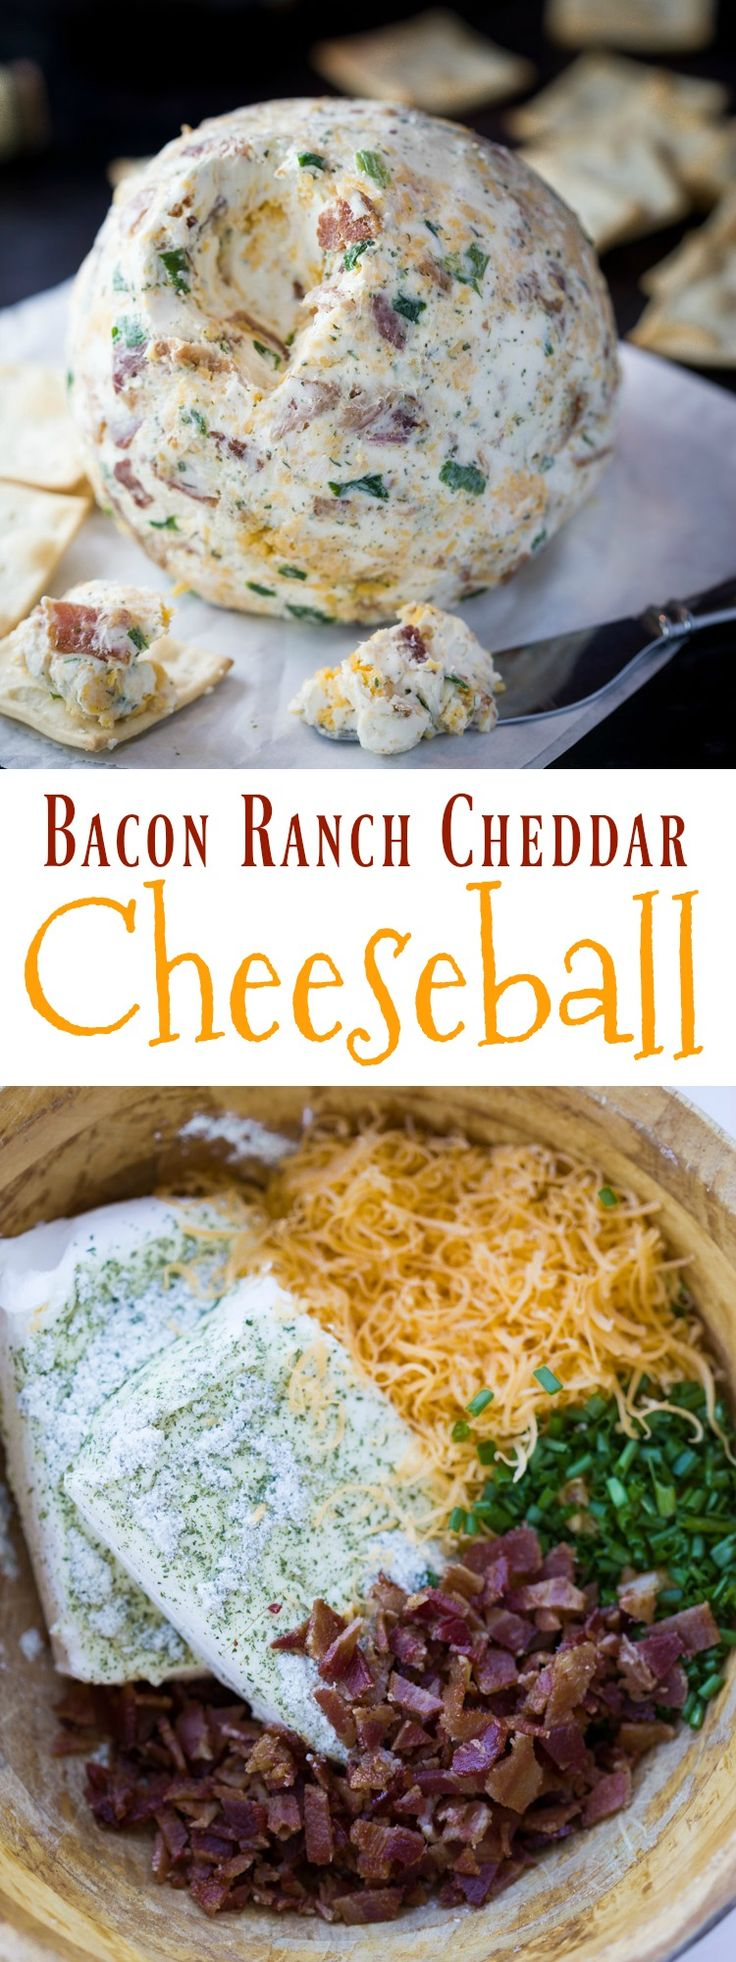 This cheese-ball as a perfect blend of flavors including ranch, crispy bacon bits, 2 kinds of cheese, and chives. A perfectly easy and delicious appetizer!